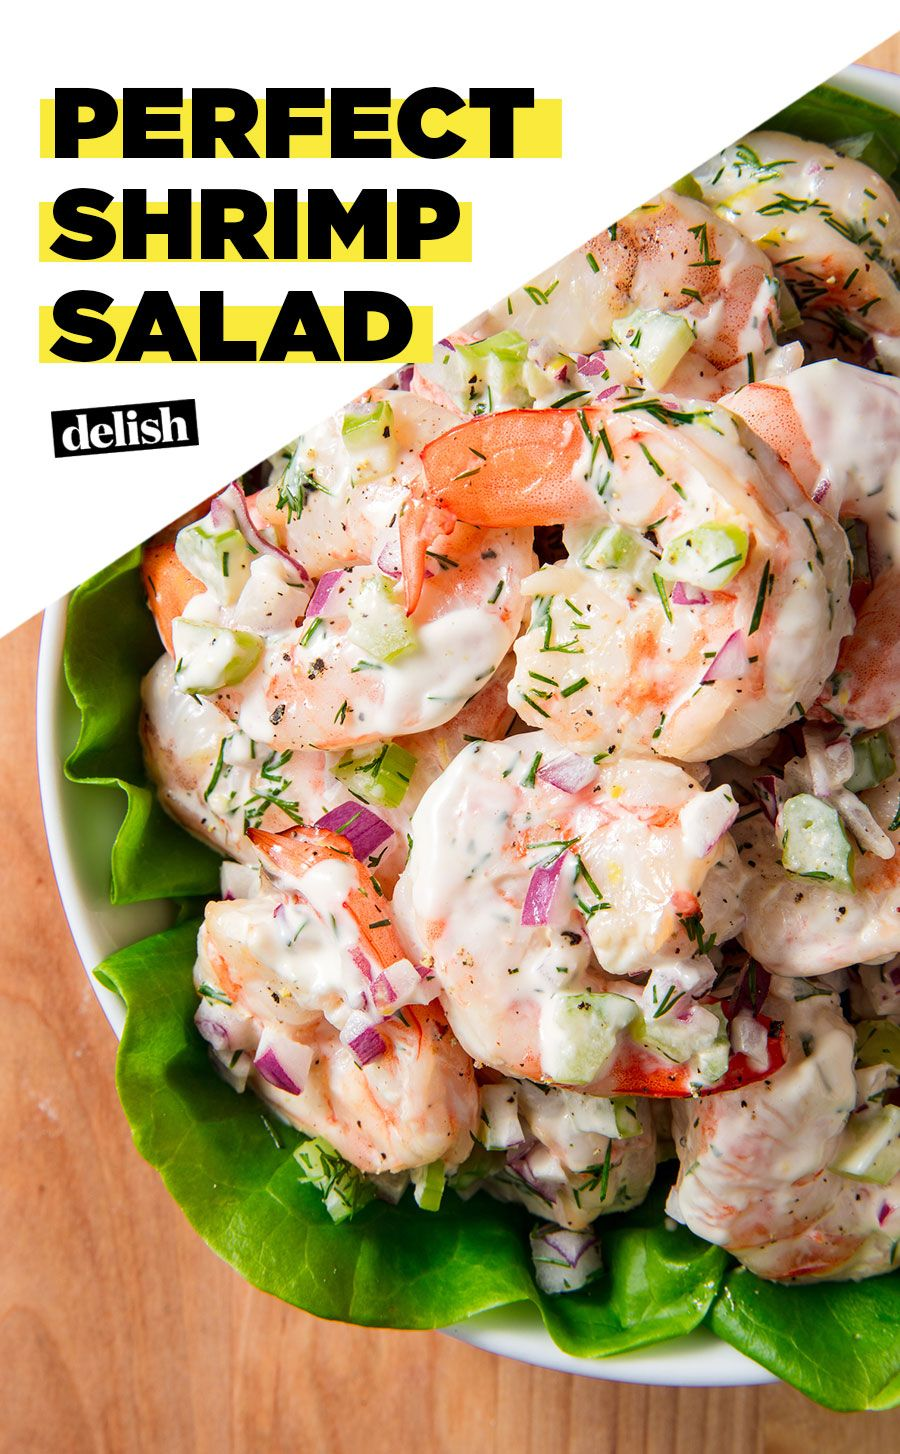 Why Is Shrimp Salad So Perfect Recipe Seafood Recipes Shrimp Salad Shrimp Salad Recipes